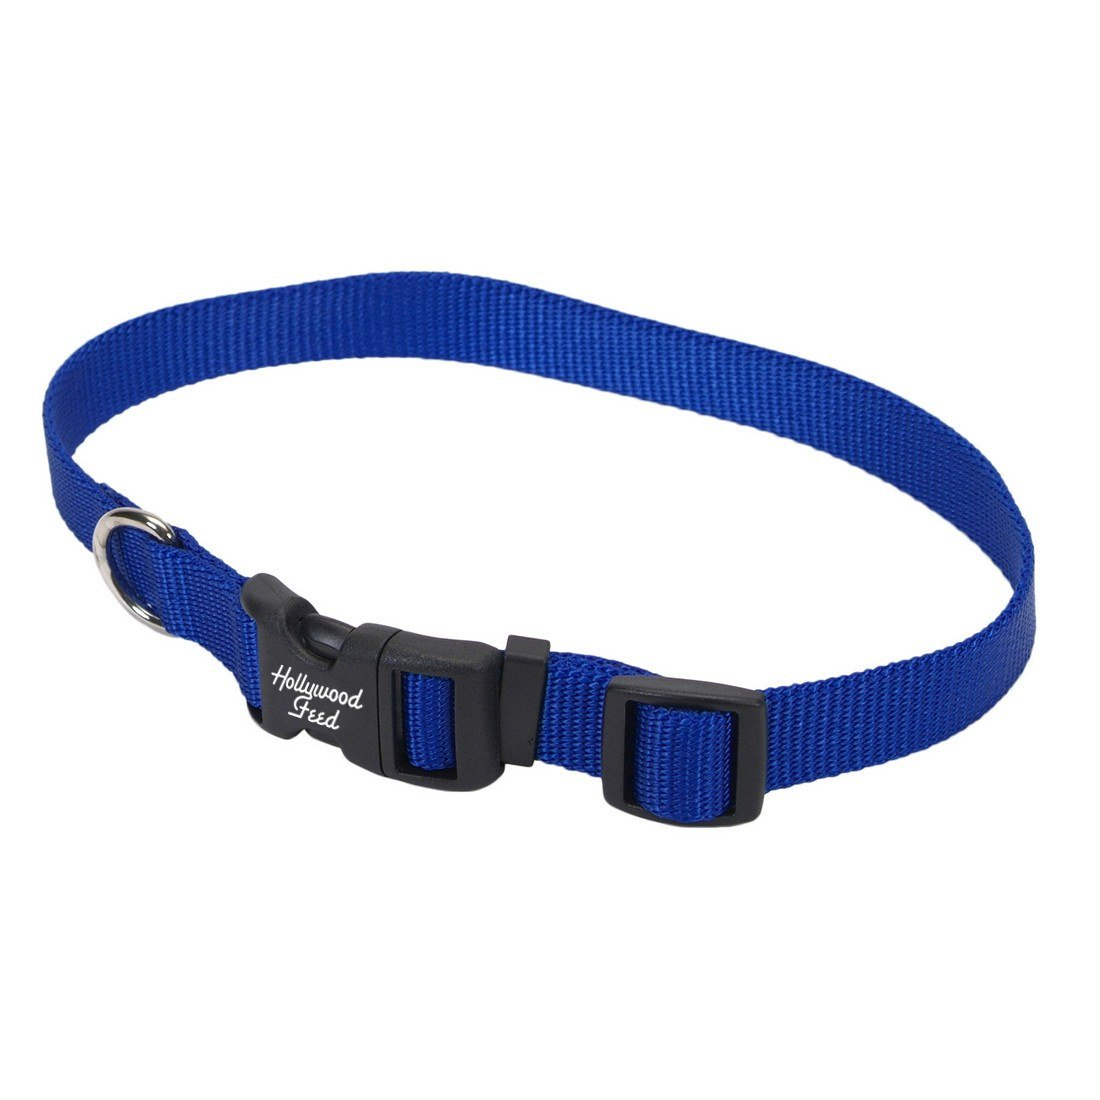 hollywood-feed-nylon-dog-collar-blue